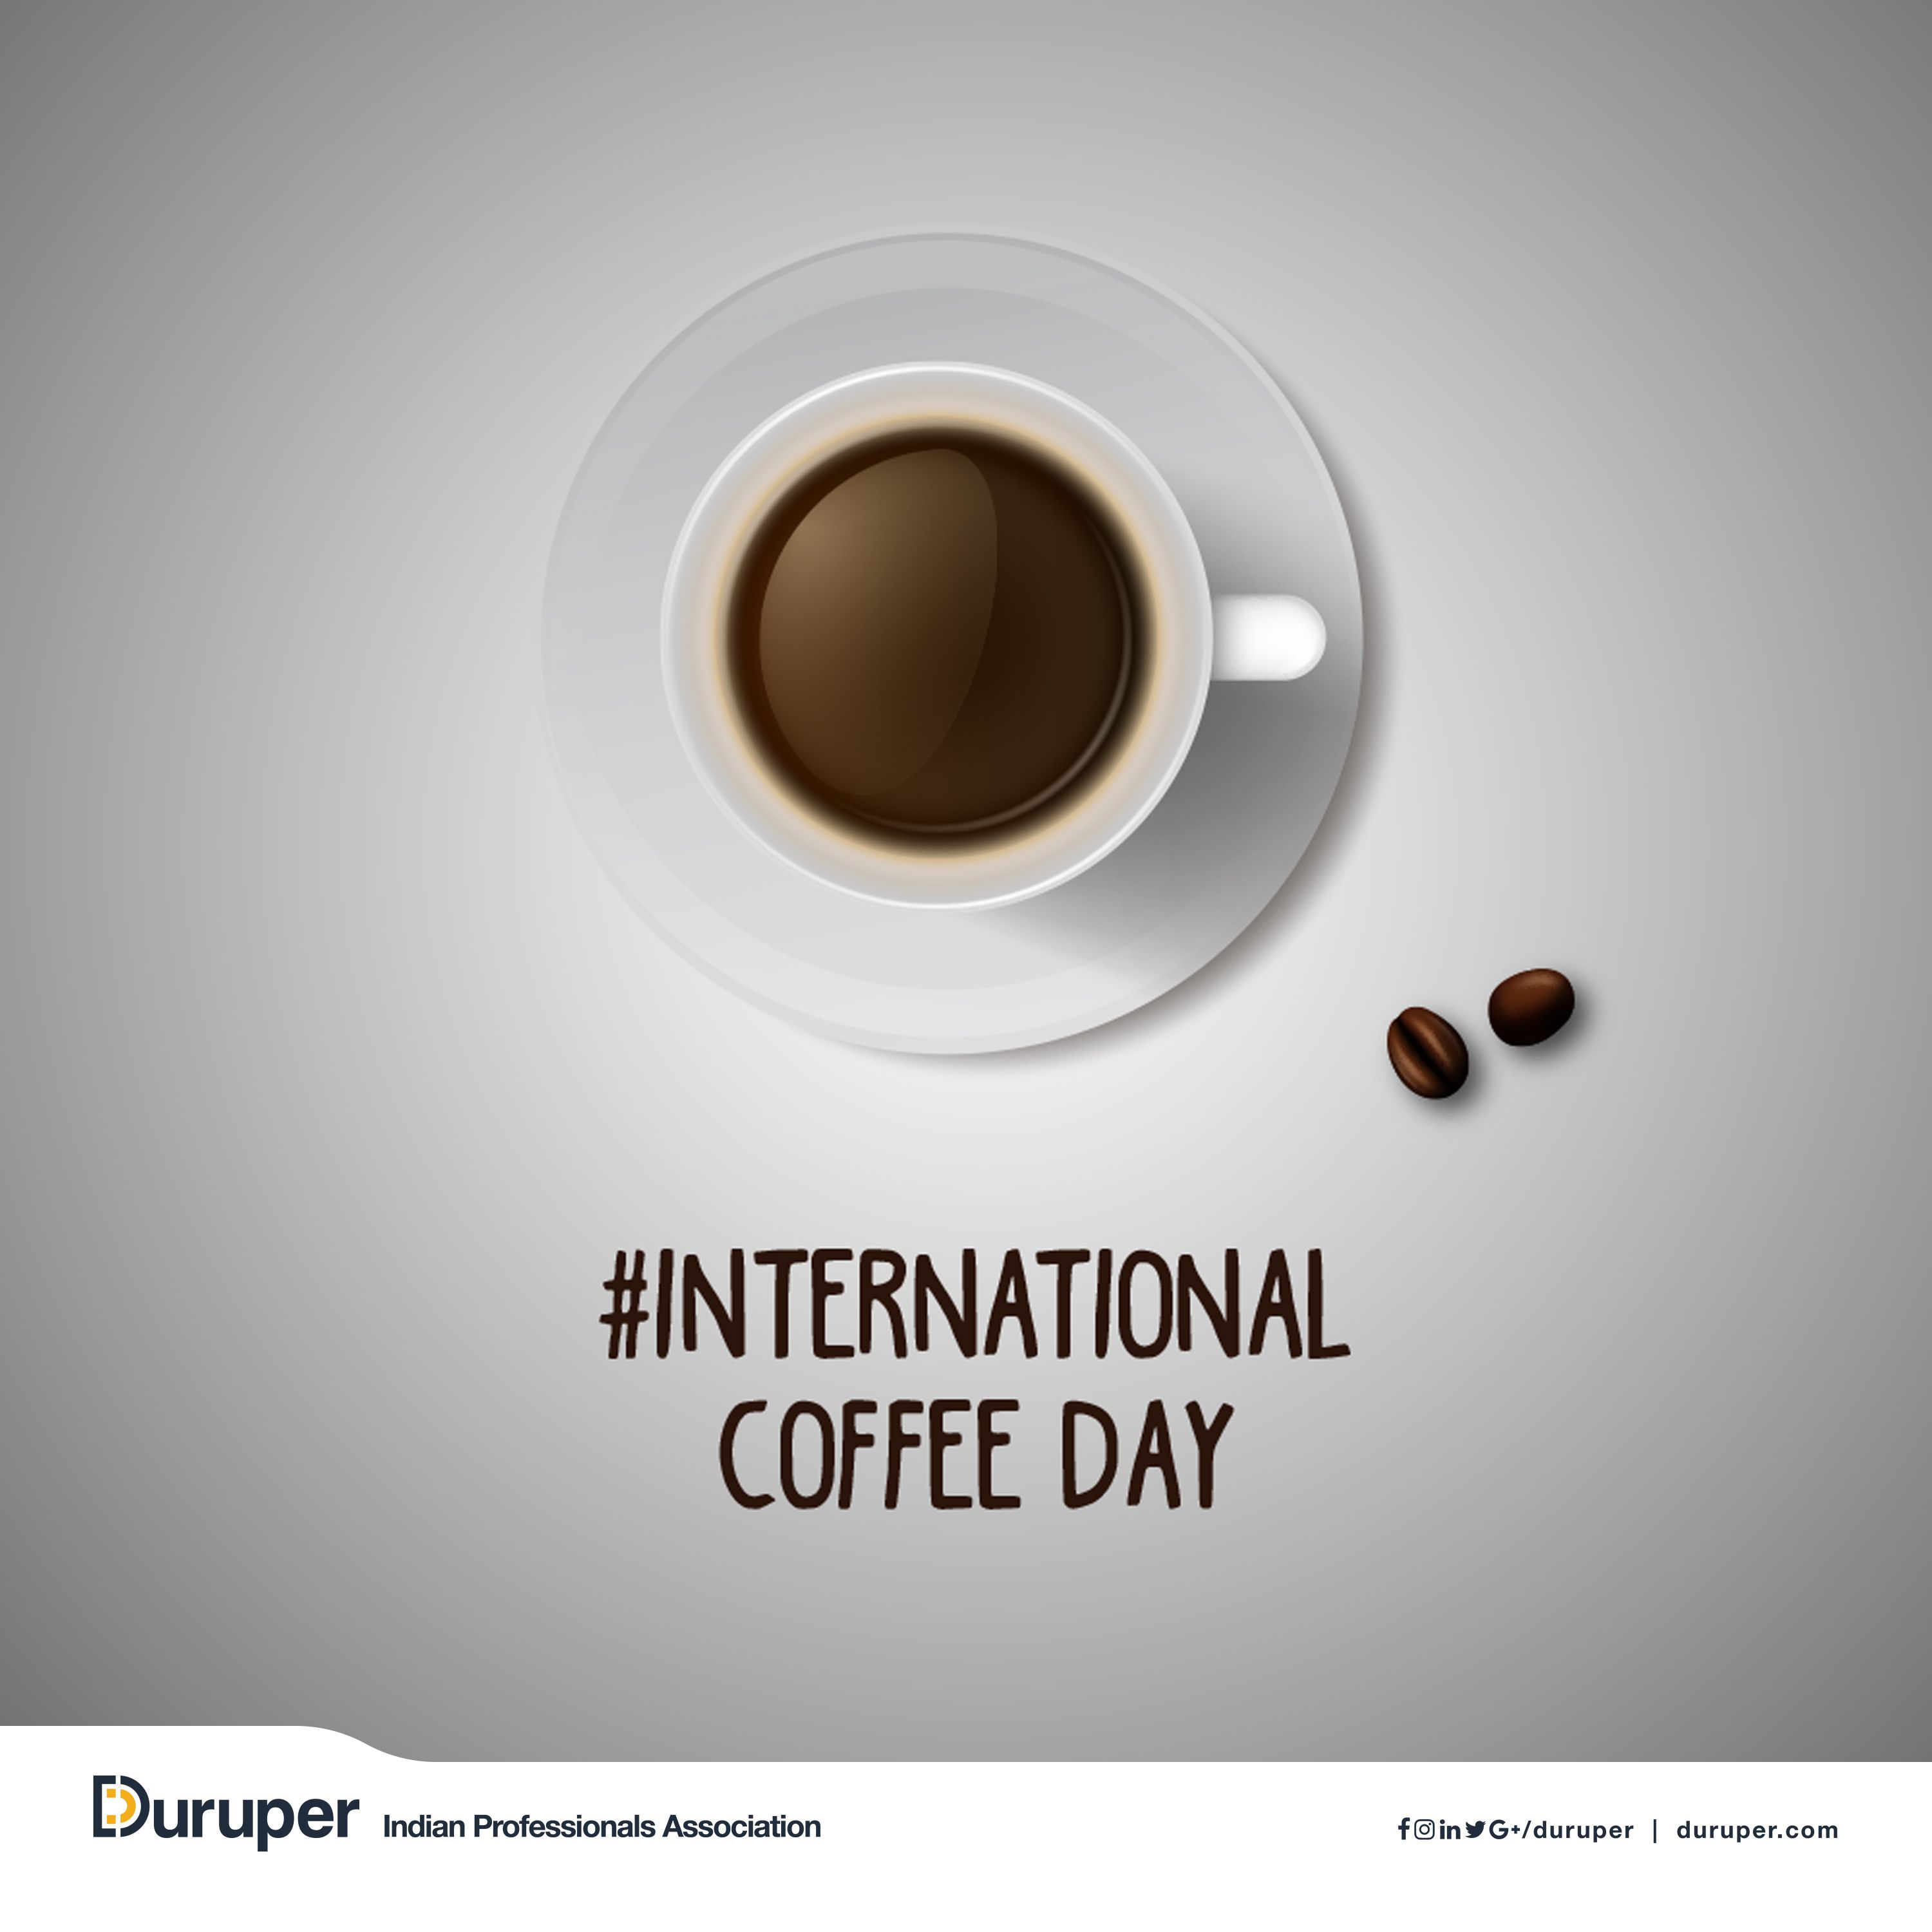 Happy International Coffee Day! Did you know that the